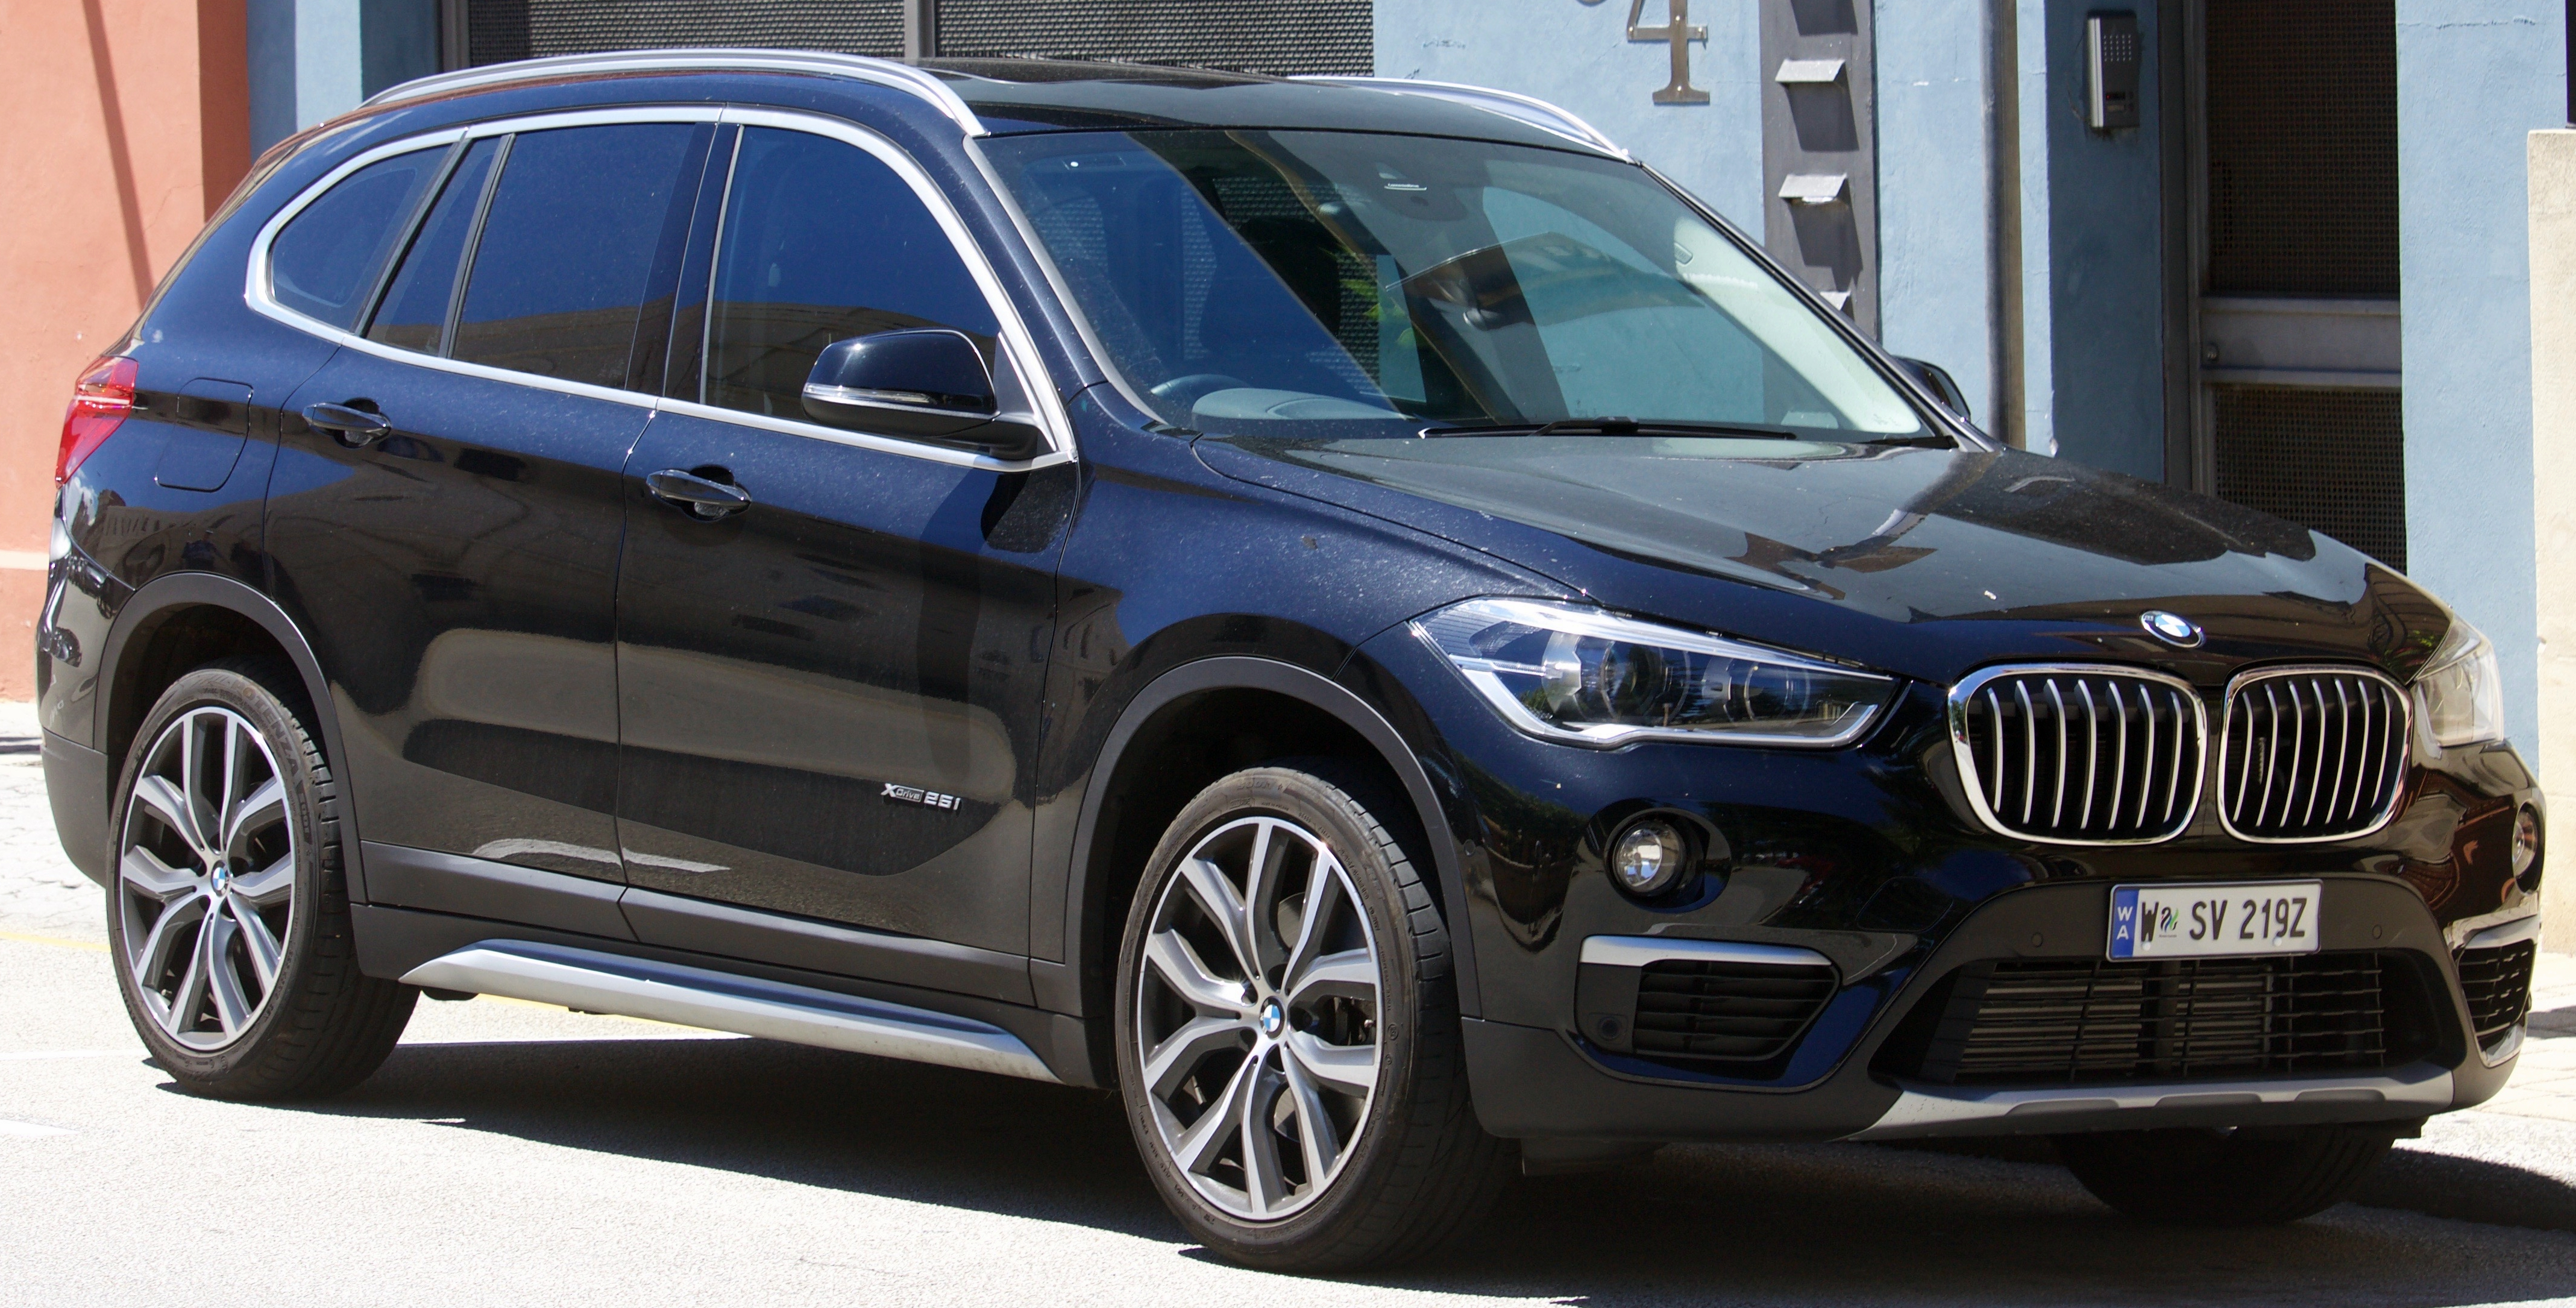 BMW X1 II (F48) 2015 - now SUV 5 door #2